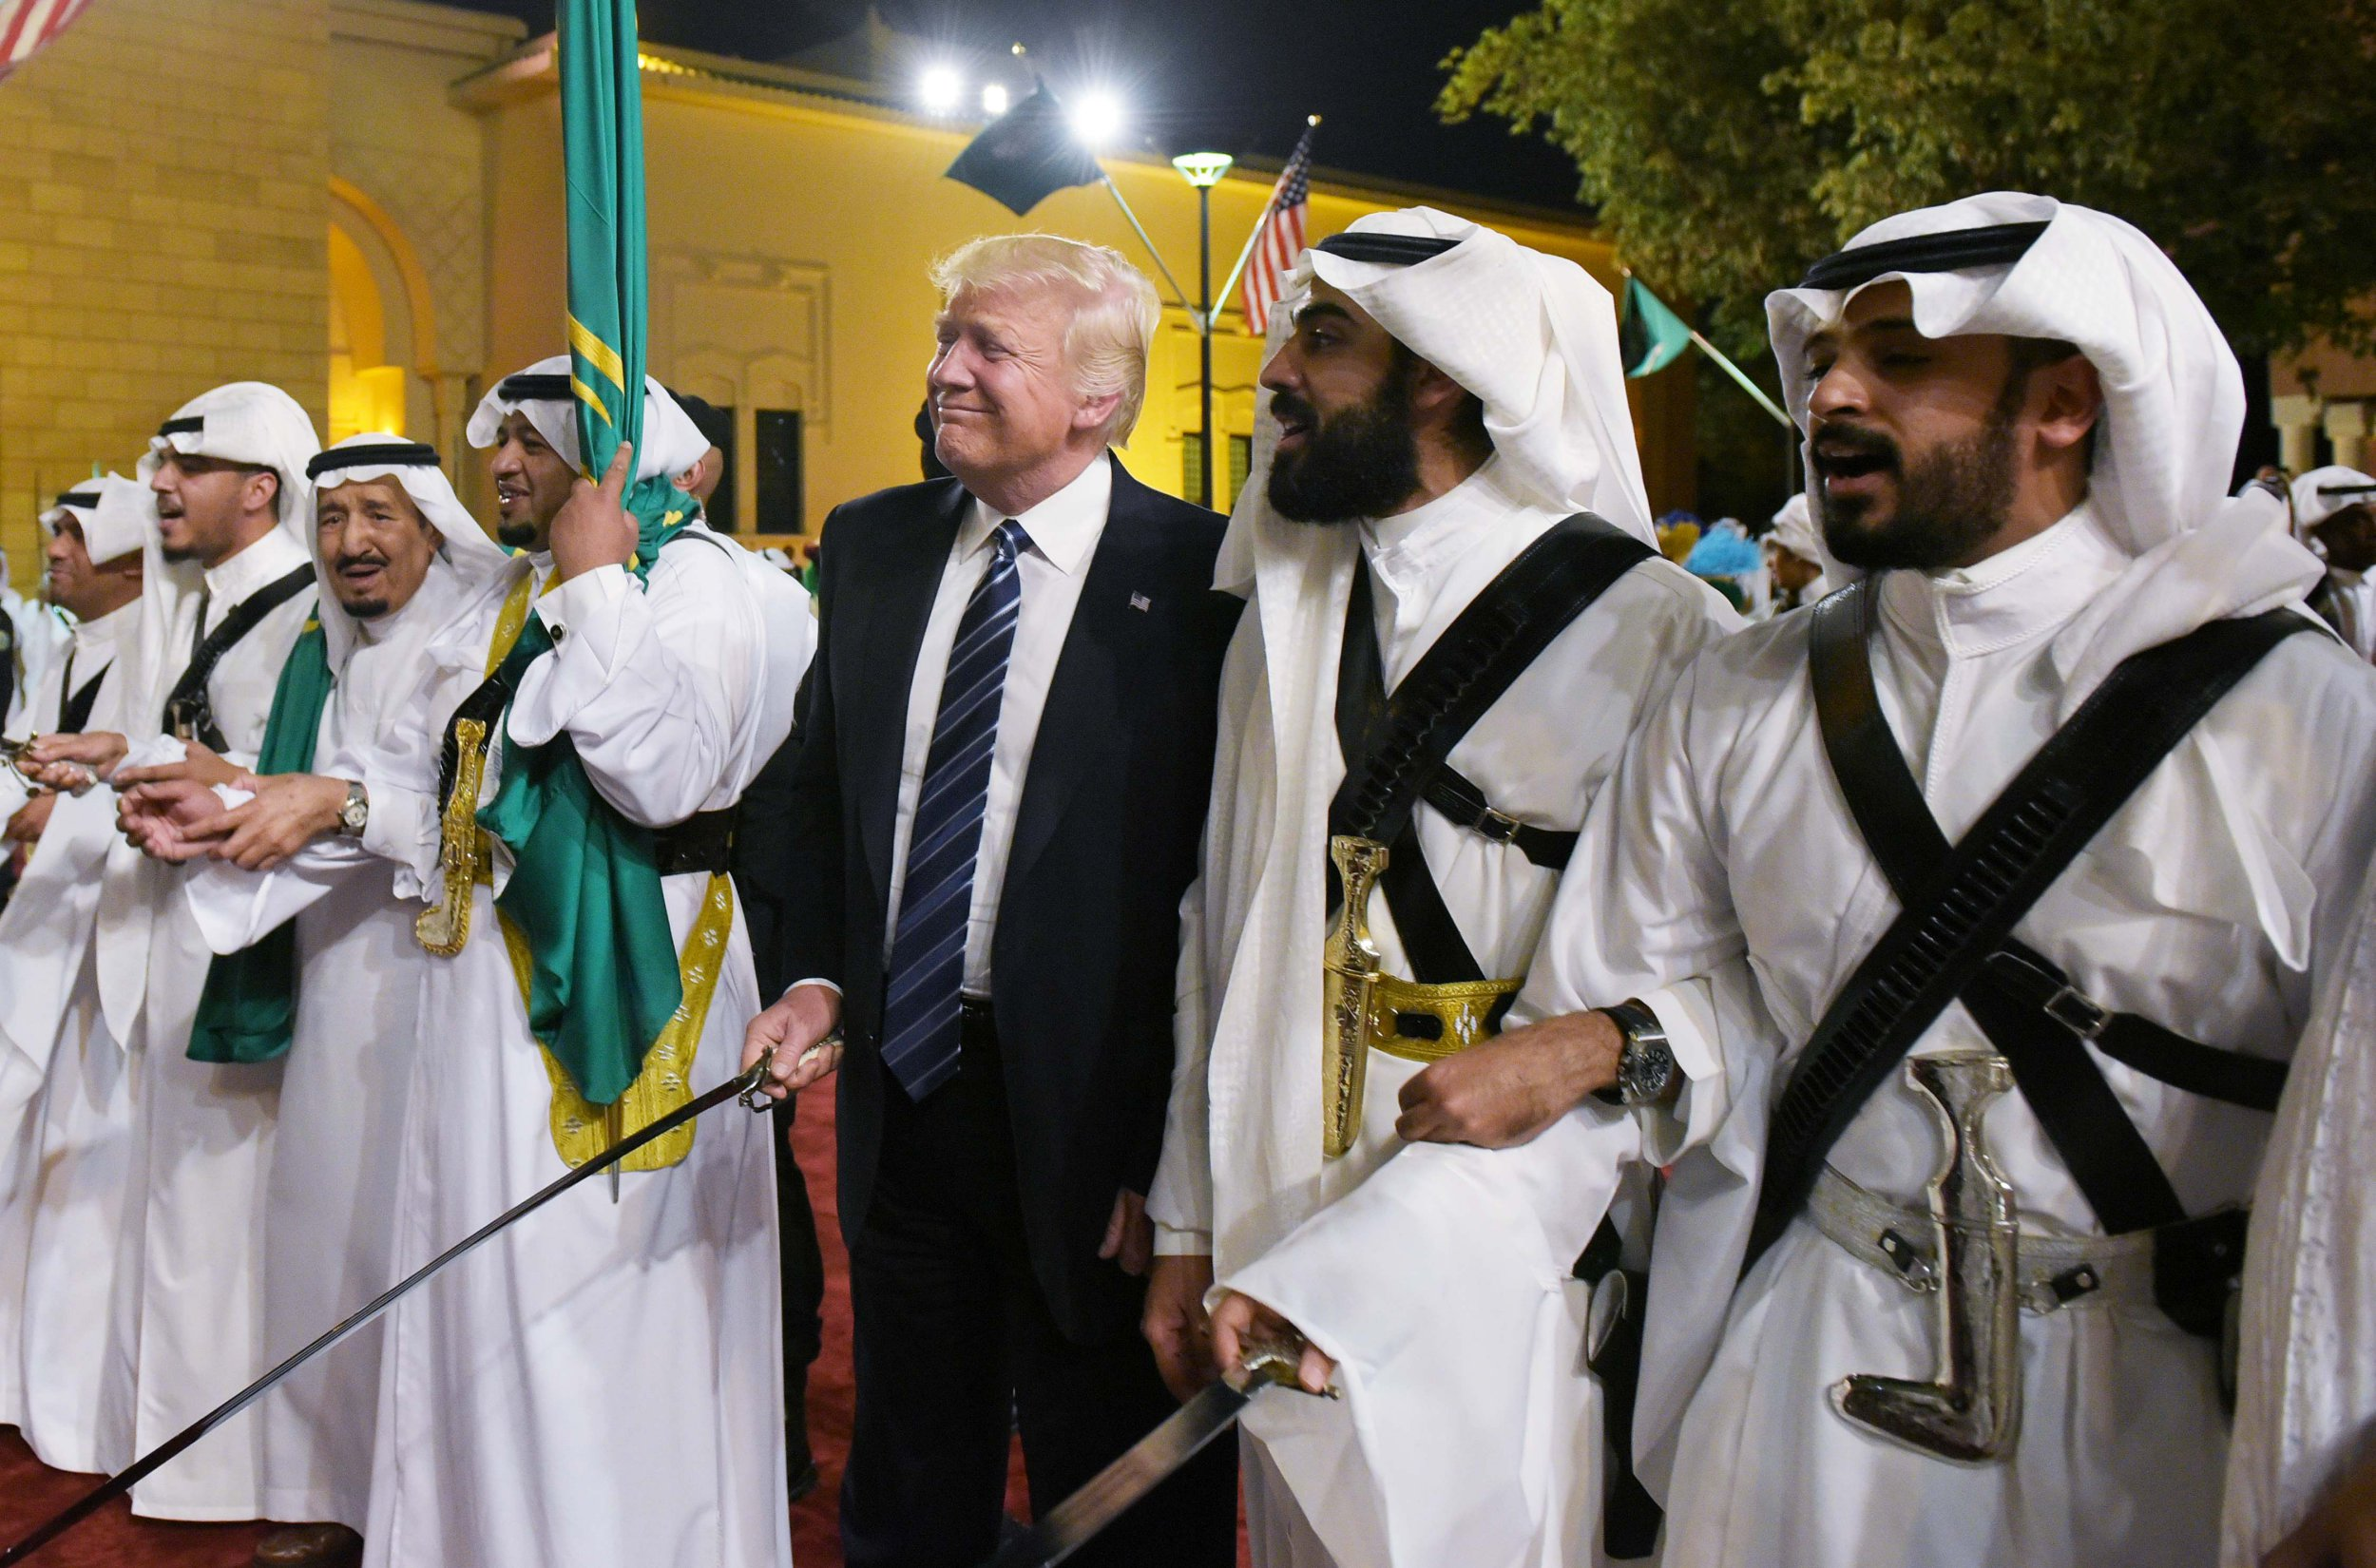 Trump arrives in Saudi Arabia with Melania and Ivanka in first foreign trip as President